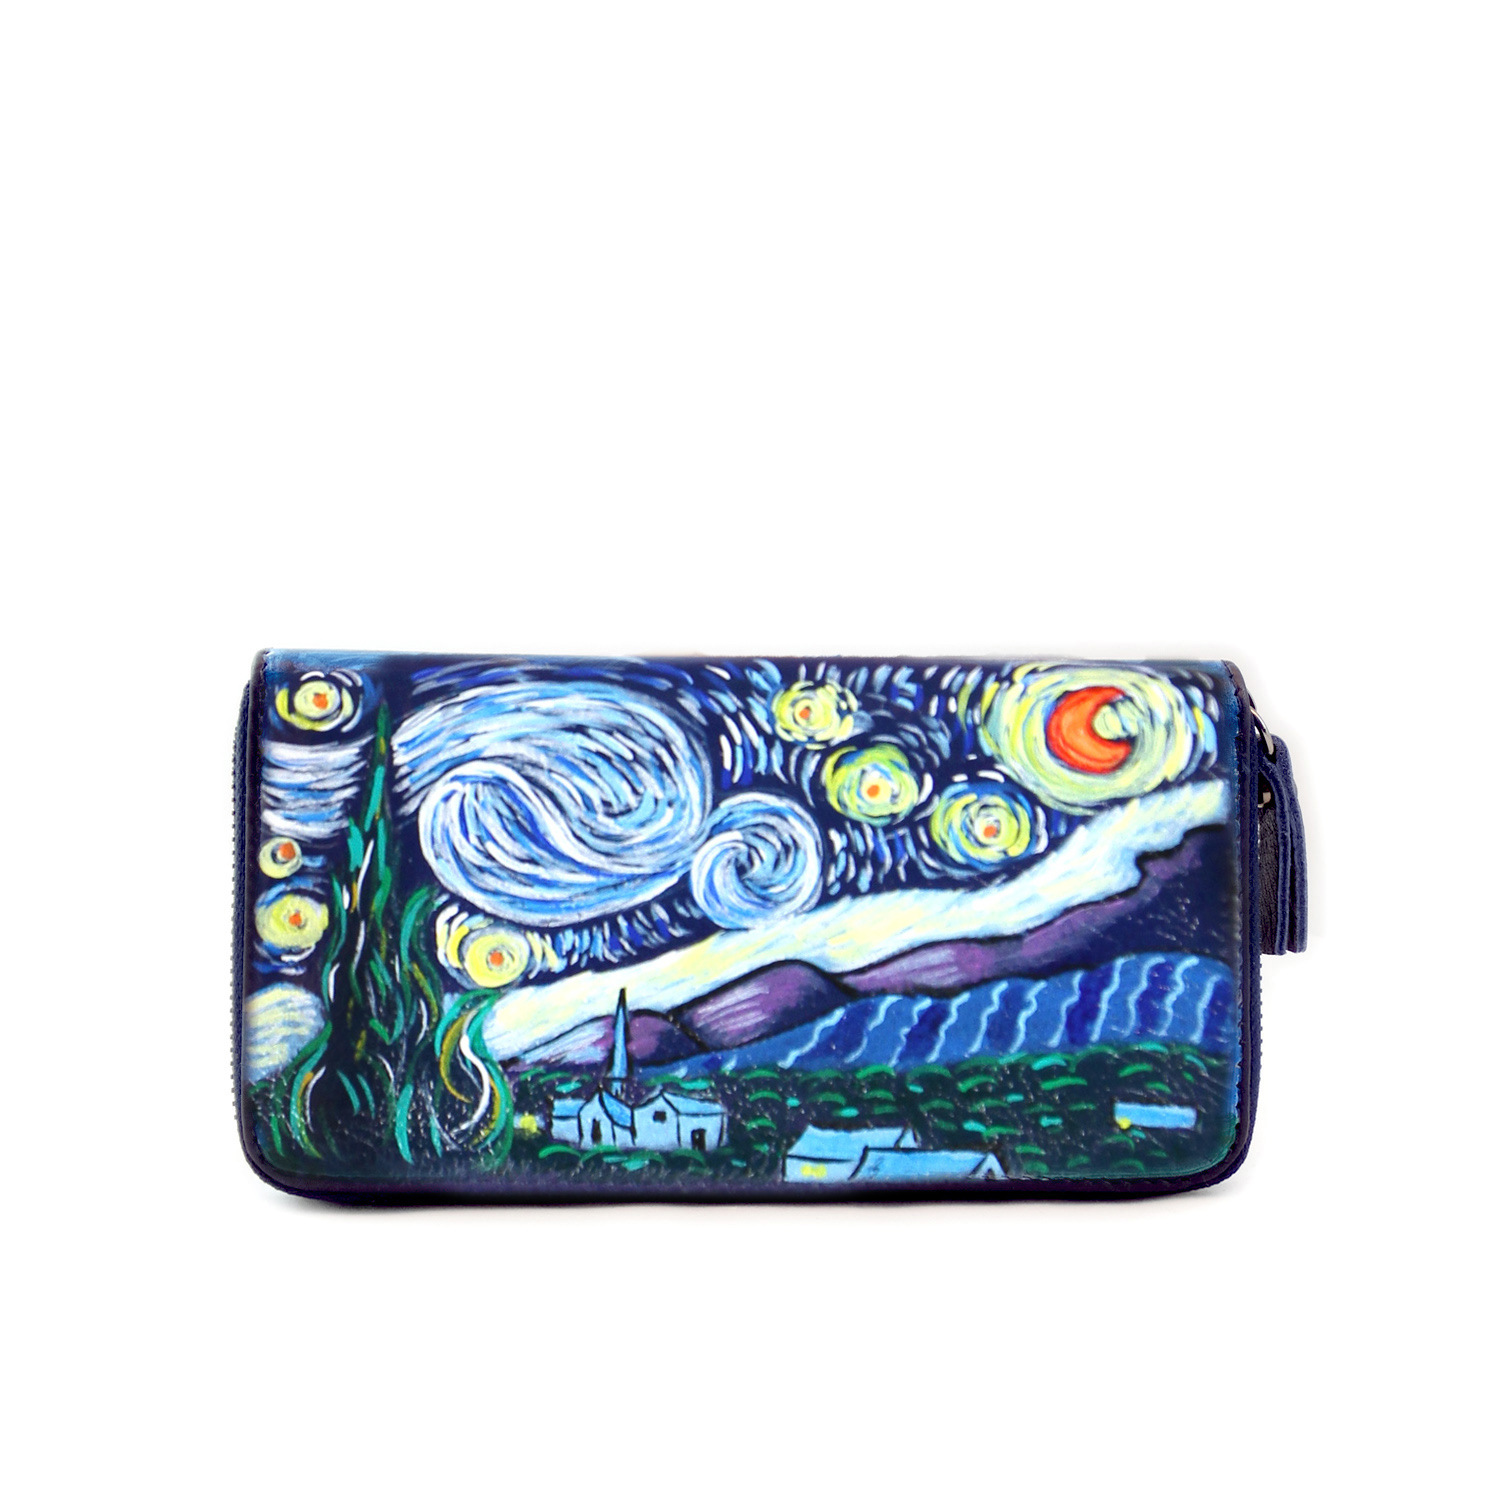 Hand-painted wallet - The Starry Night by Van Gogh